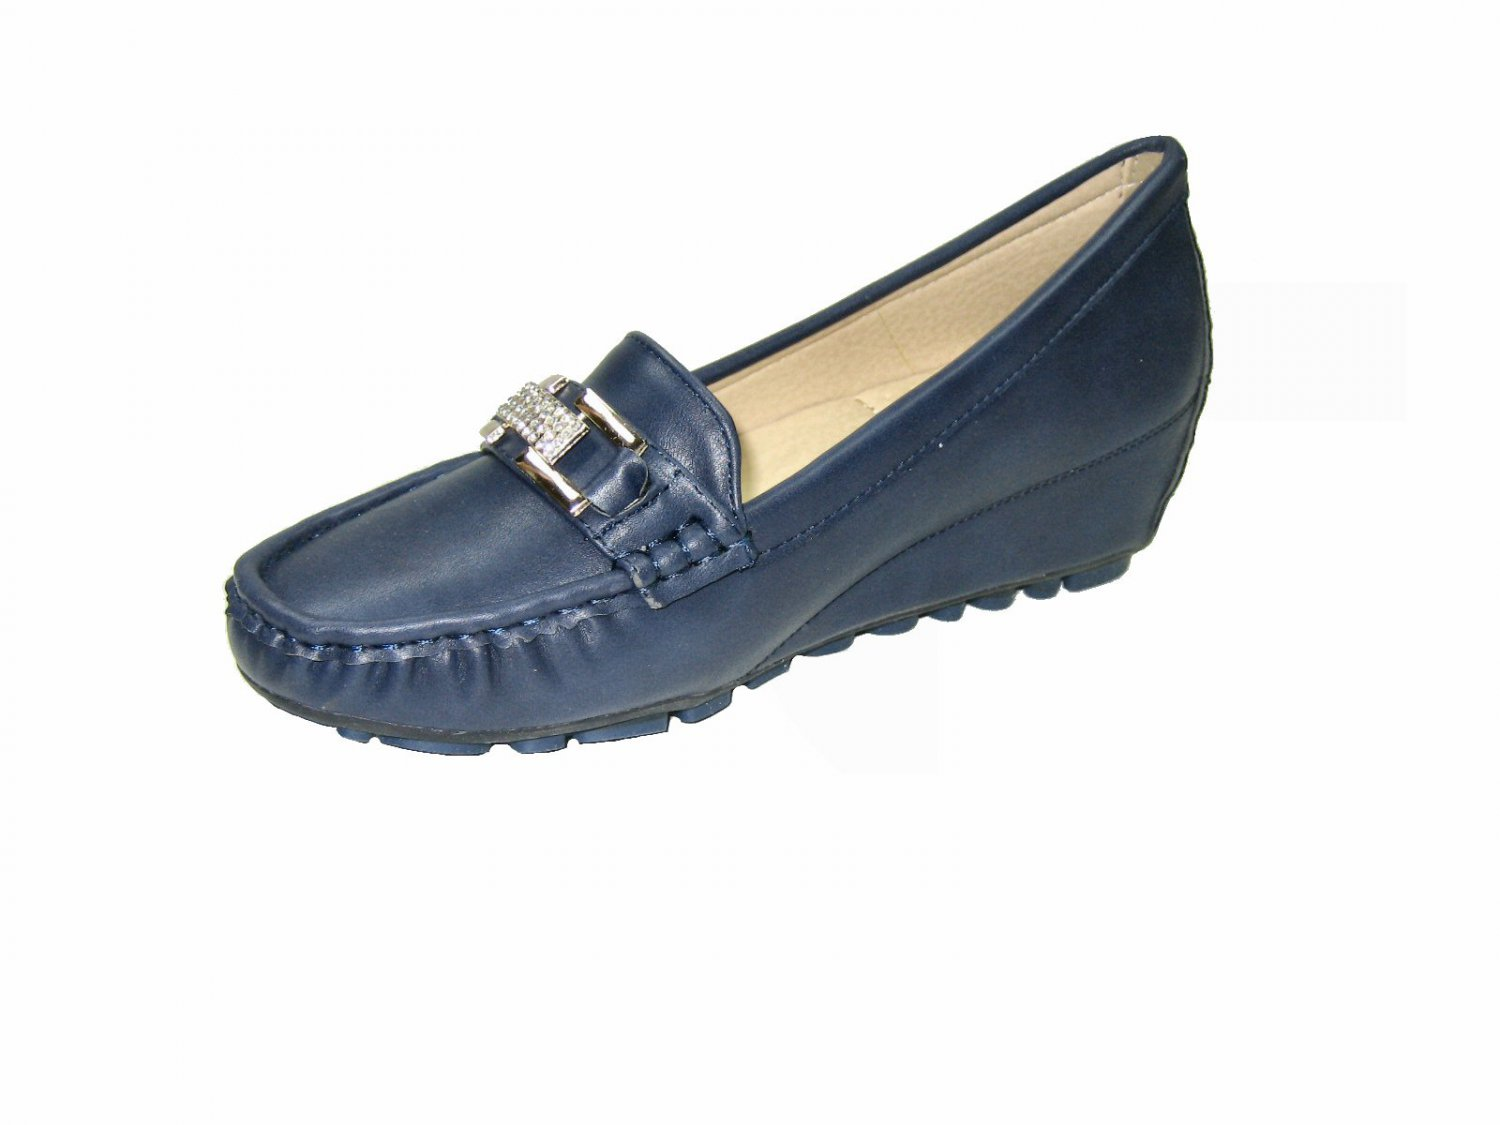 Nature Breeze SouthBay-2p 2 inch wedge heel comfort loafer rhinestone pumps shoe navy size 8